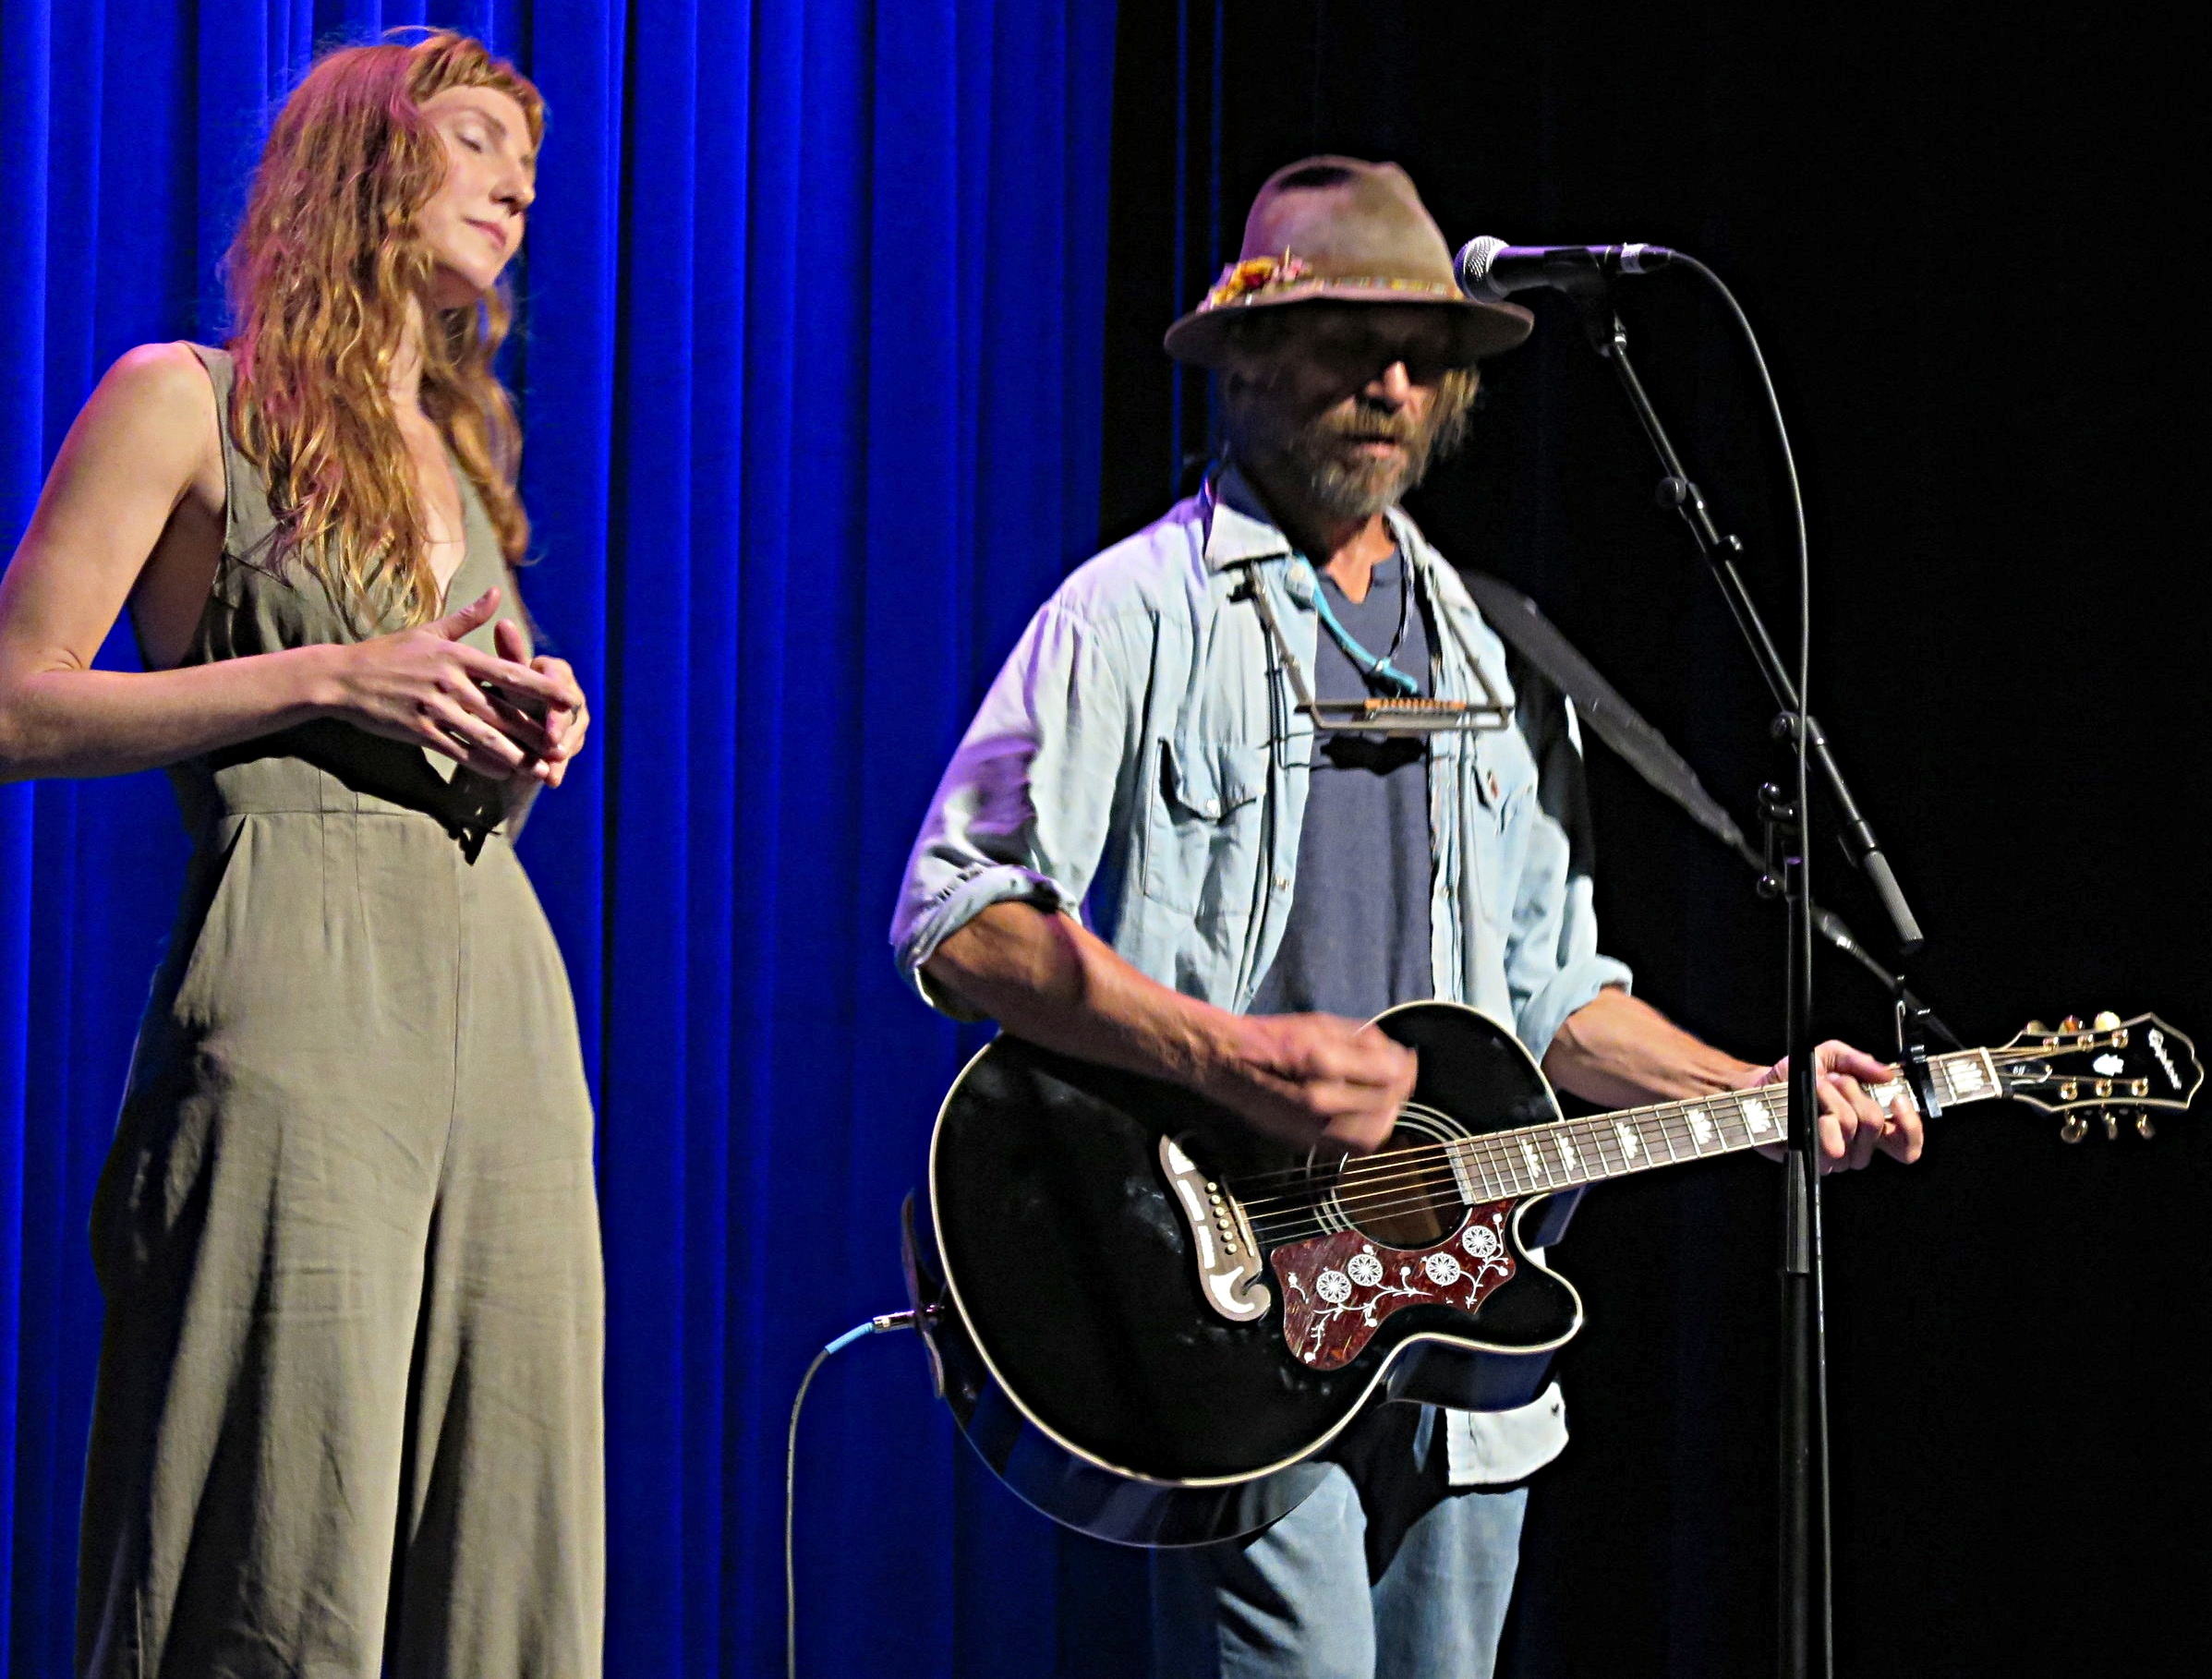 Rorey Carroll and Todd Snider at Reevestock in Elkin, NC 8-3-18